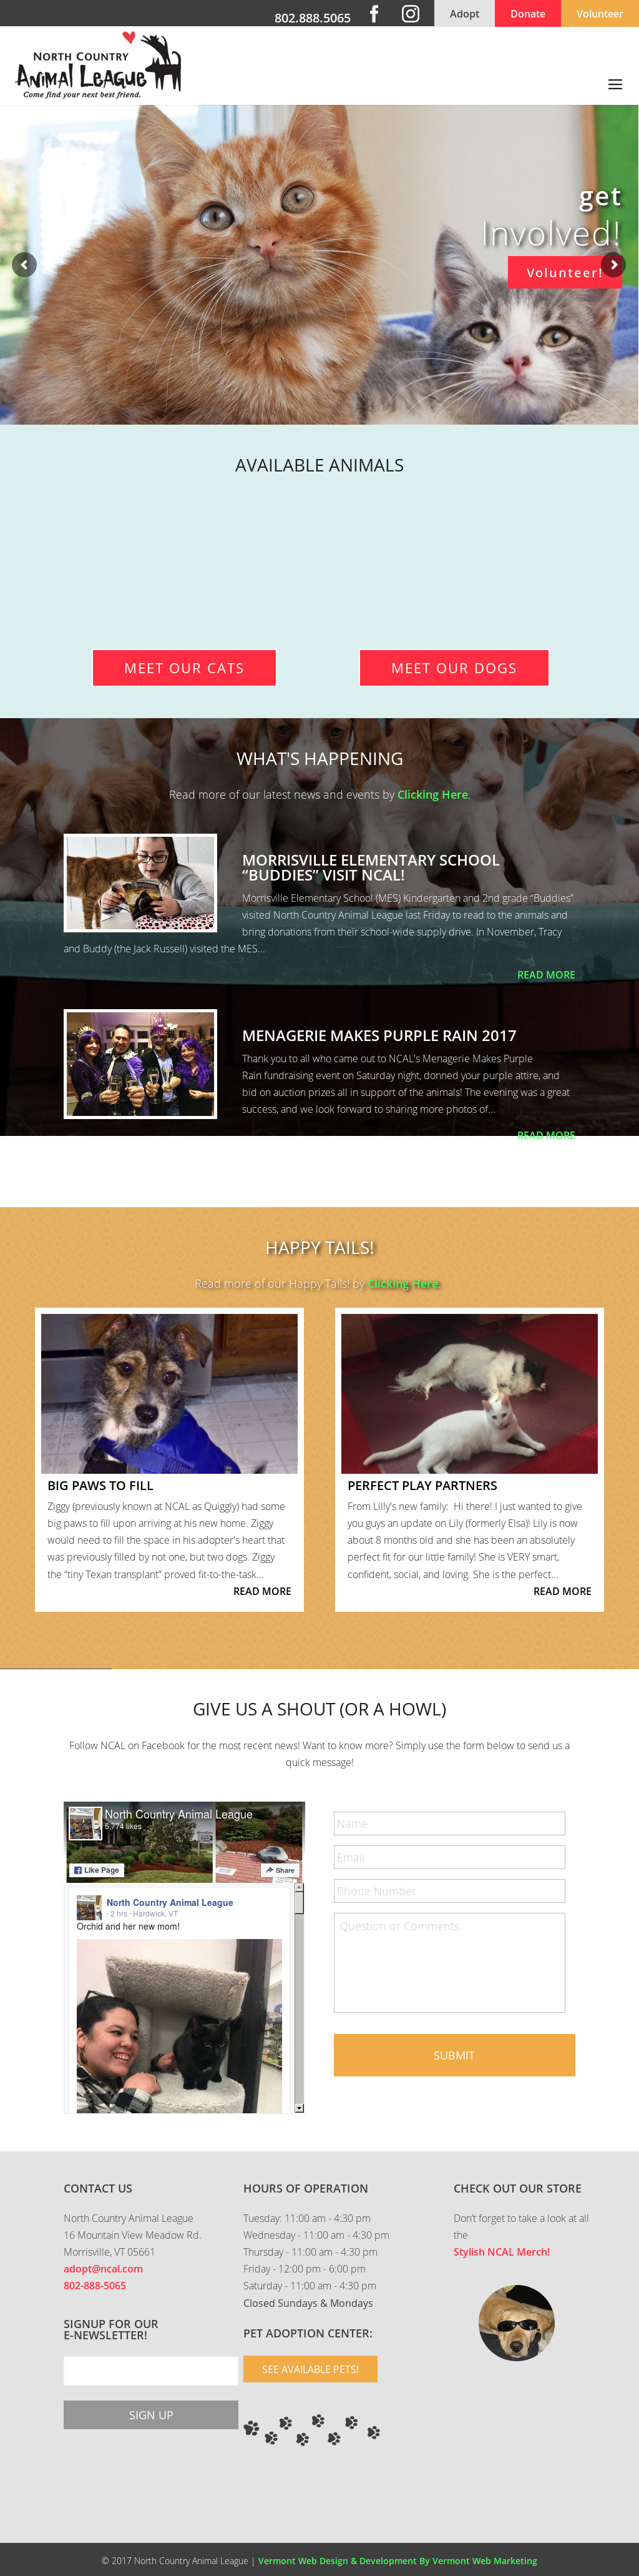 North Country Animal League Competitors, Revenue and